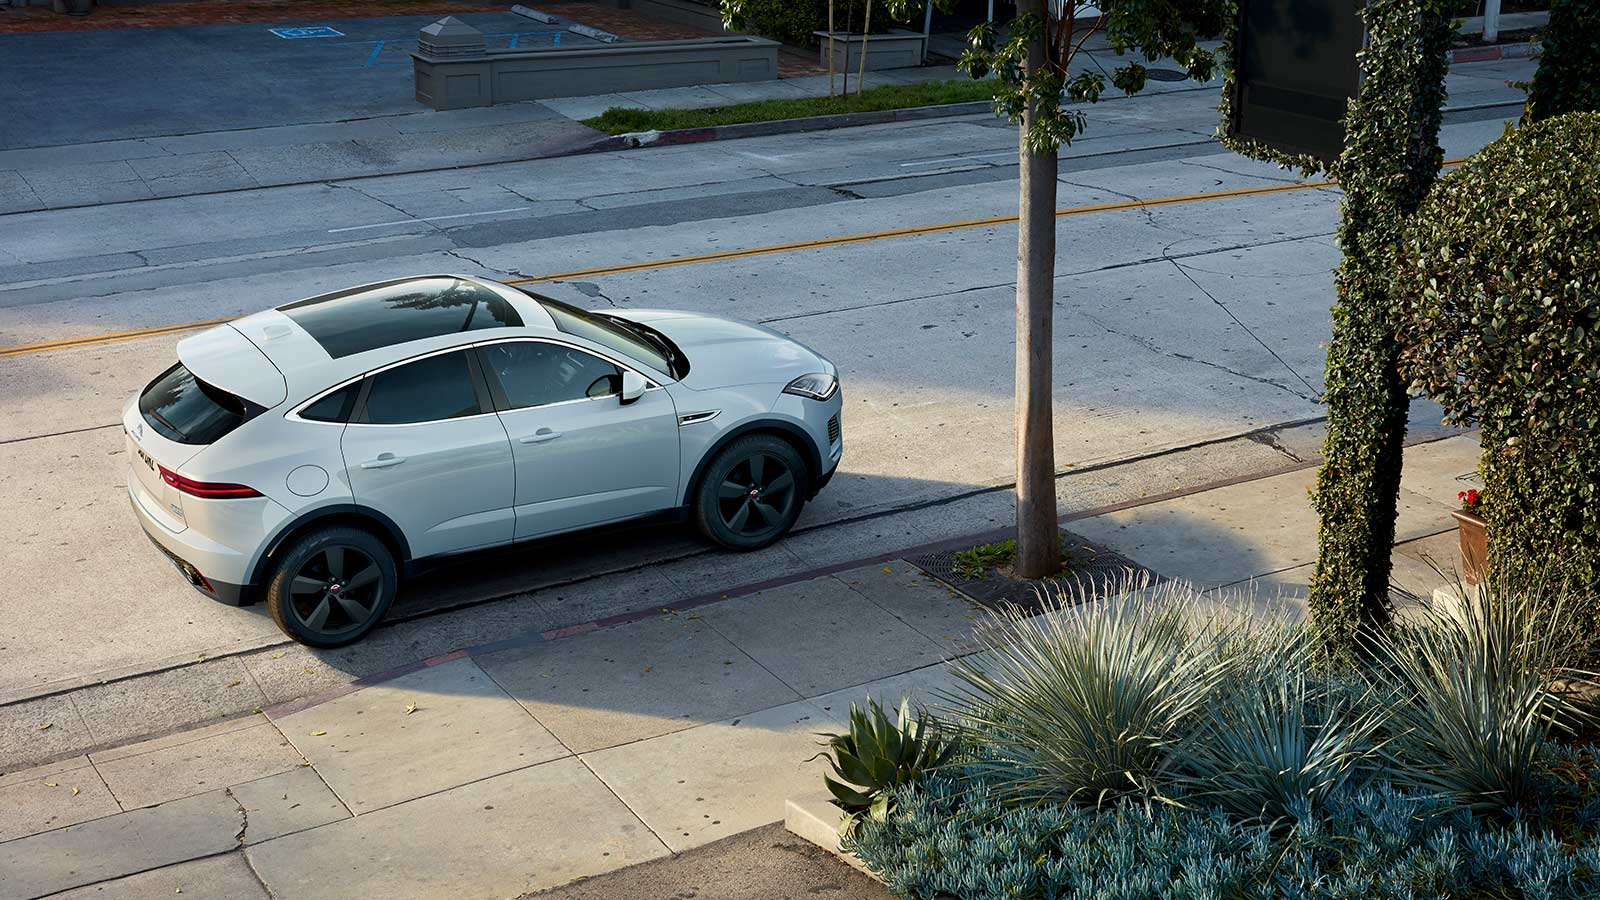 E-PACE R-DYNAMIC SE IN YULONG WHITE WITH OPTIONAL FEATURES FITTED PARKED IN A CITY BY TREES.